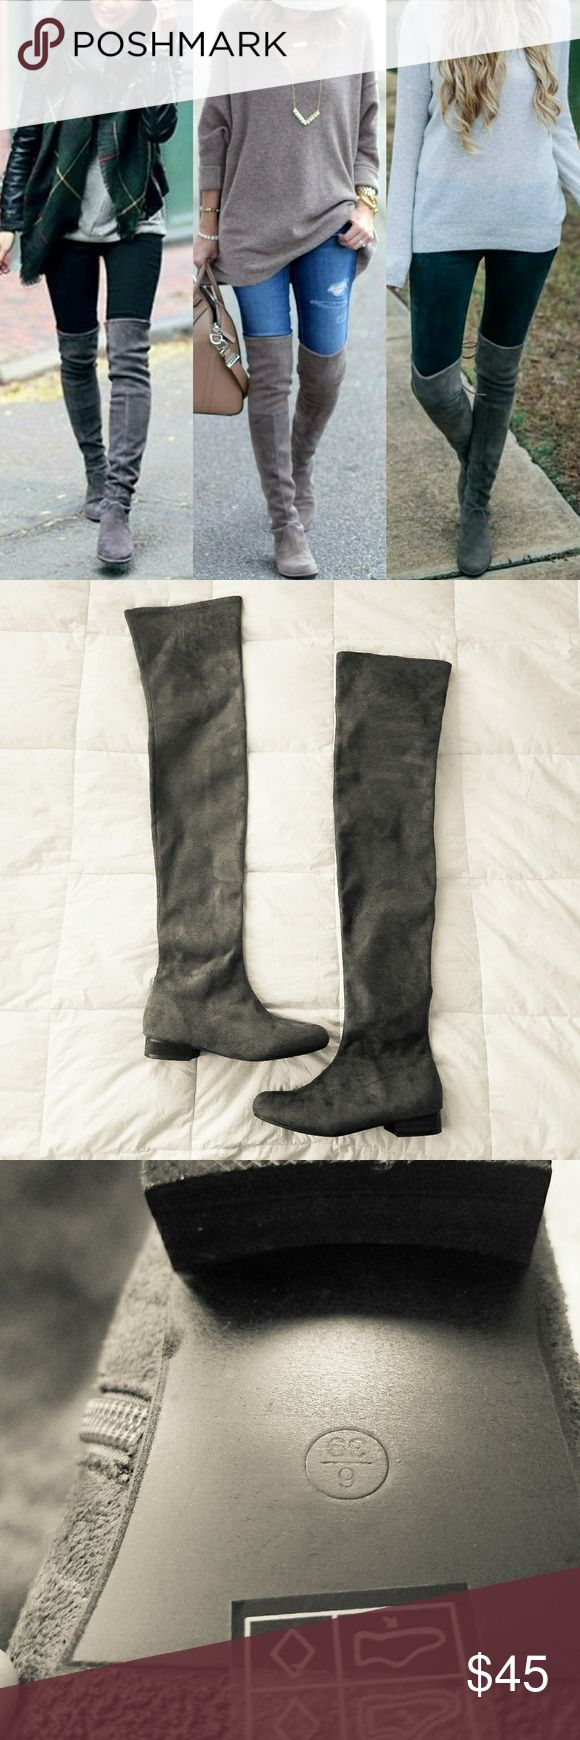 Grey Suede Thigh High Boots